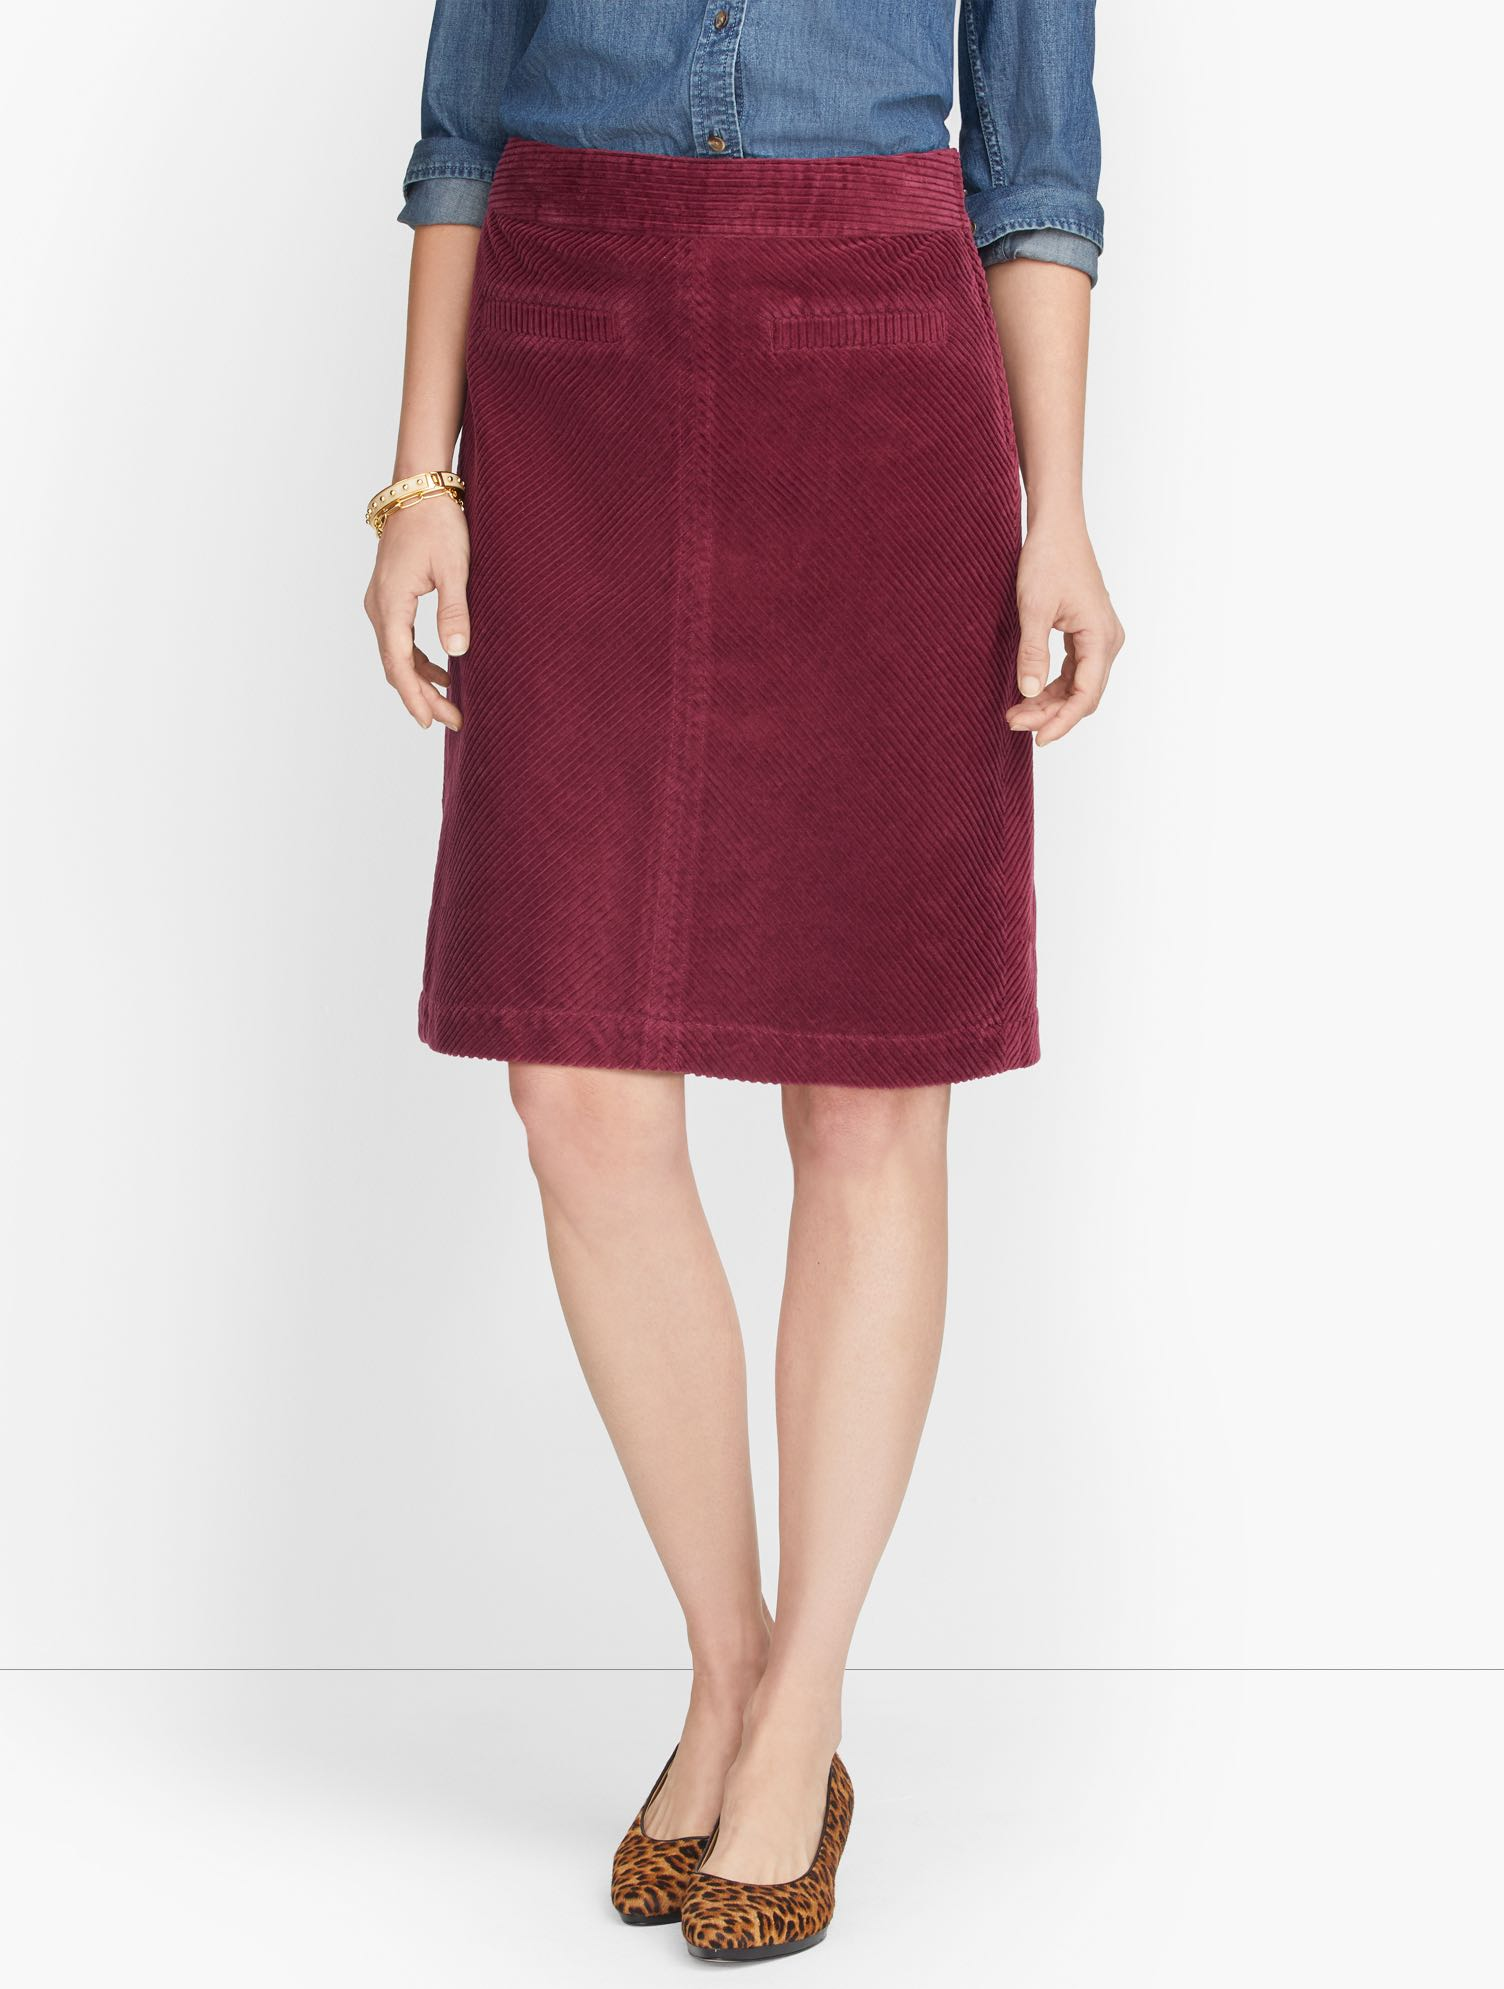 The classic A-line skirt. In lustrous wide wale corduroy. Plush. Warm. Incredibly versatile. The season\\\'s must-have. Features Silhouette: A-lineHits: Top of KneeClosure: Side zipPockets: Front WeltImported Fit: Misses: 20 1/2 inches; Petite: 19 1/2 inches Material: 100% Cotton Care: Machine Wash; Tumble Dry Wide Wale Corduroy Skirt - Shiraz - 16 - 100% Cotton Talbots